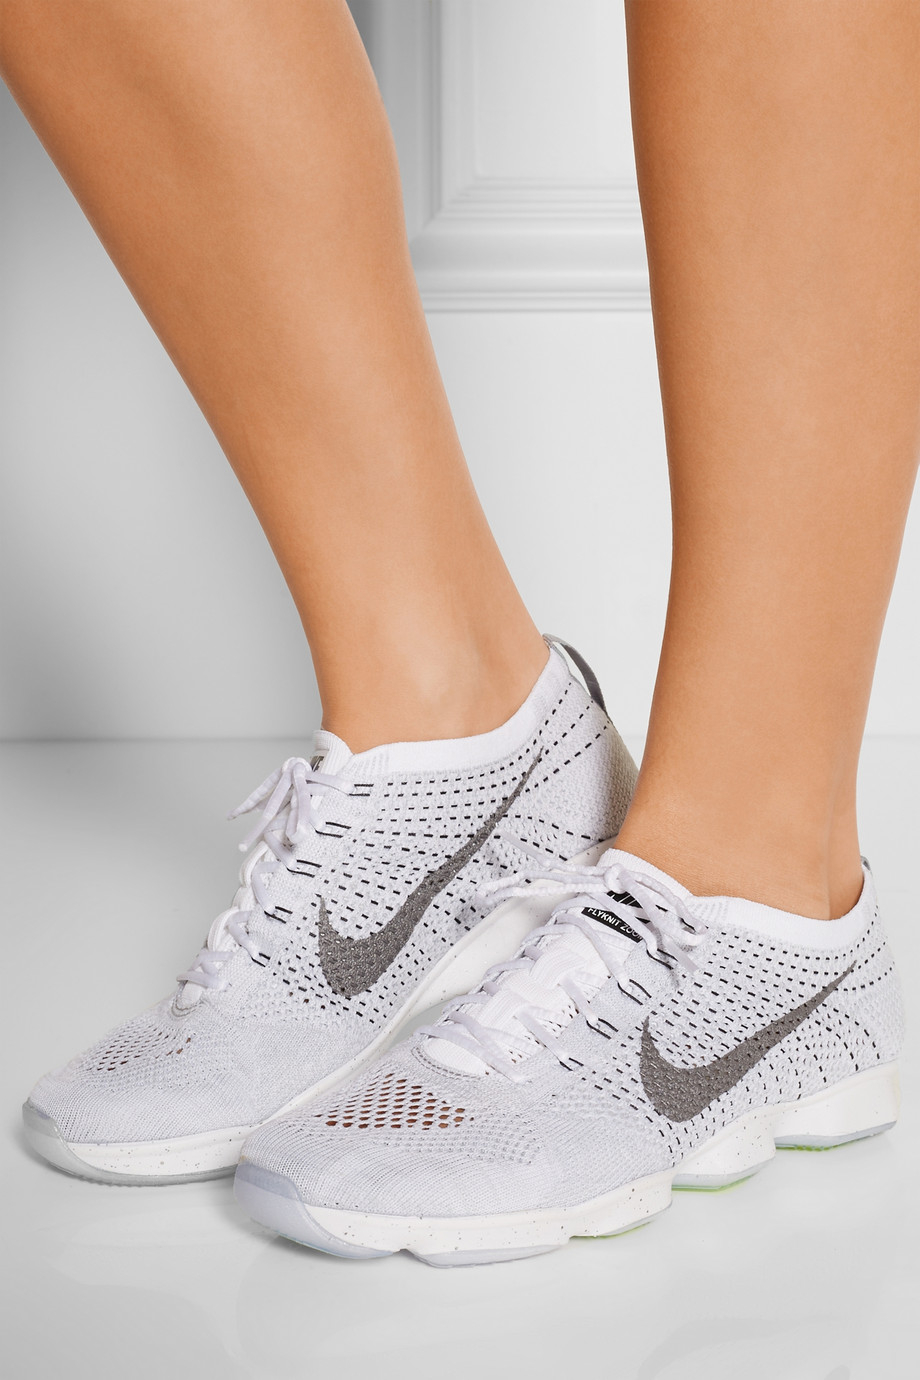 reputable site eca92 75ddf Nike Flyknit Zoom Agility Mesh Sneakers in White - Lyst